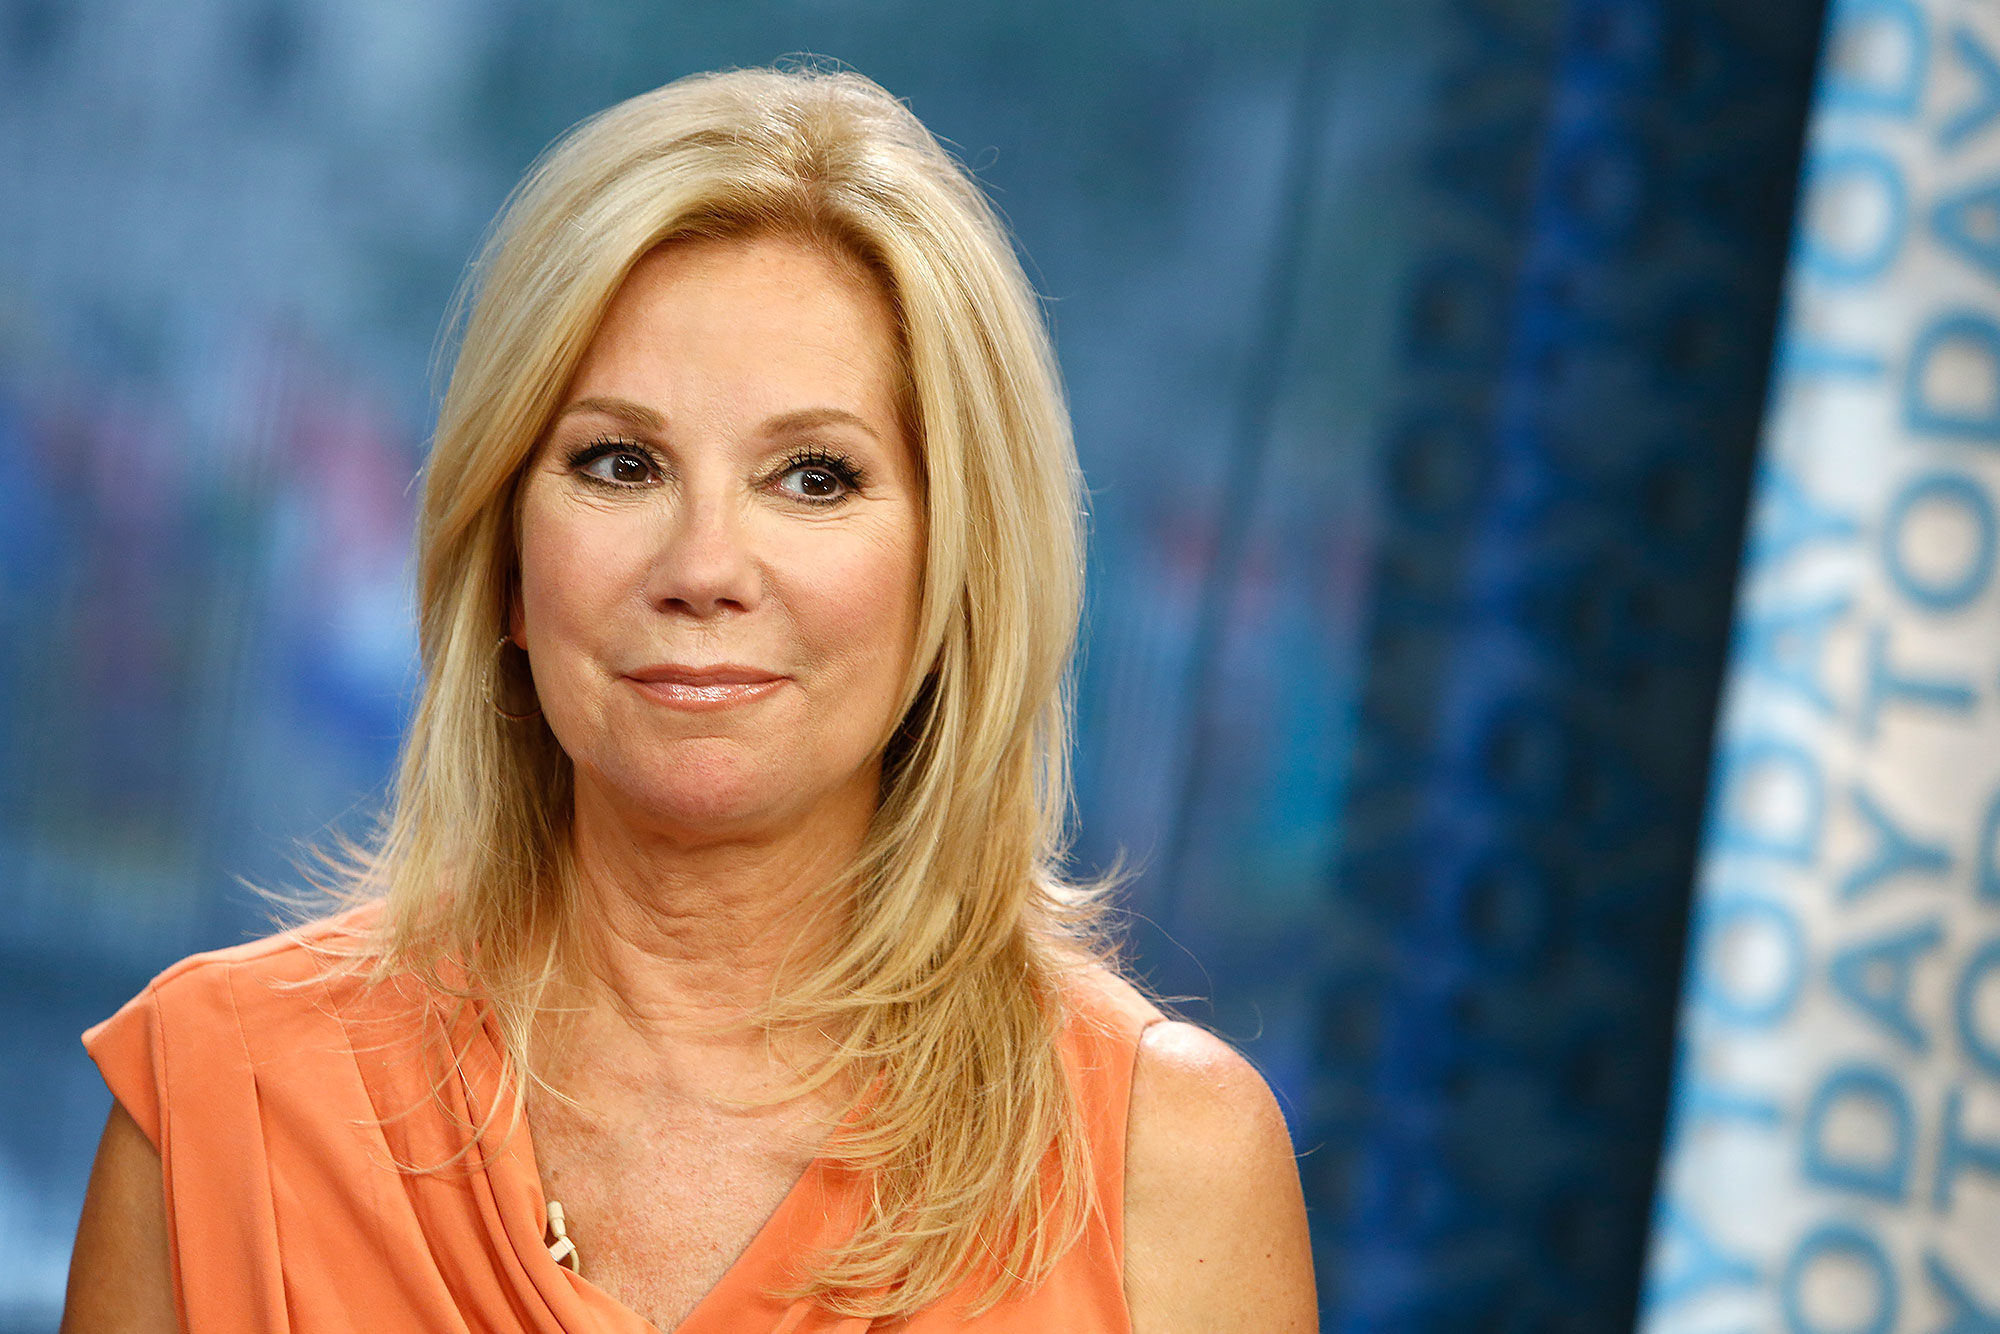 Kathie Lee Gifford Is Leaving theTodayShow After Almost 11 Years